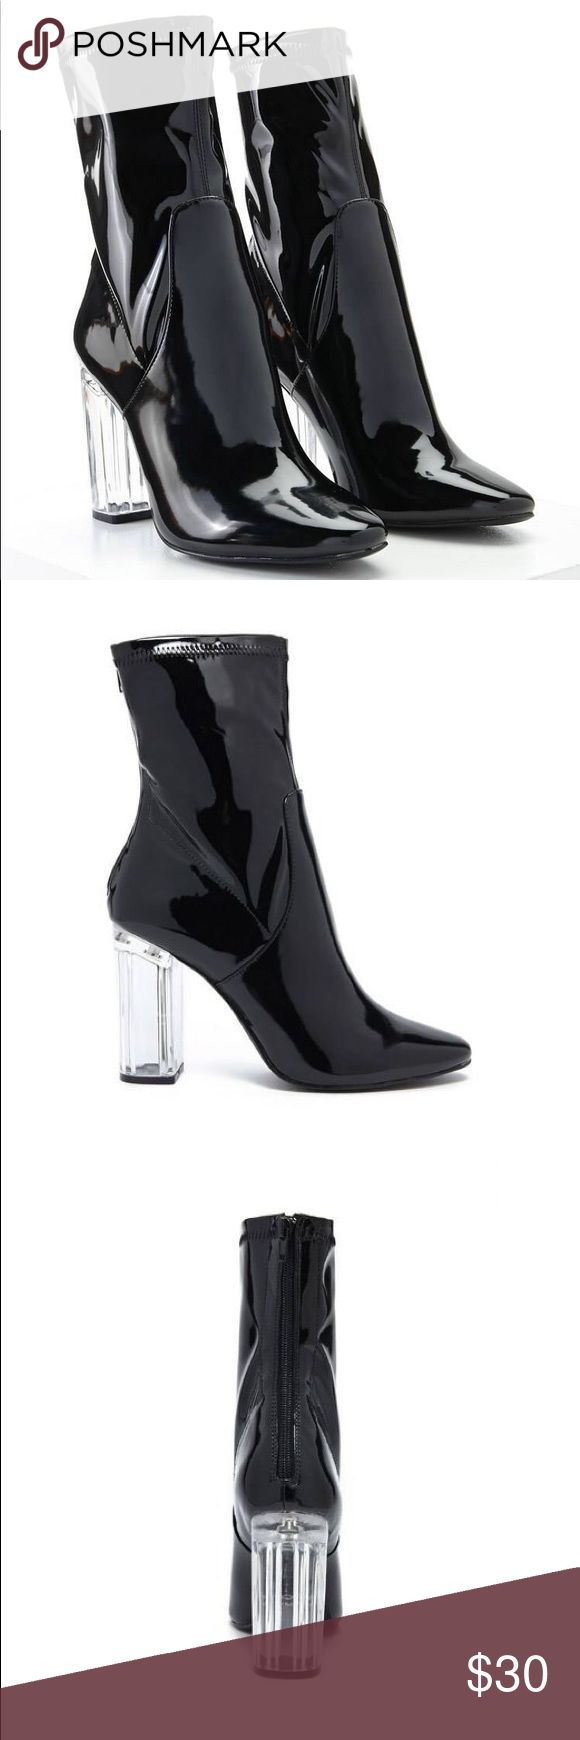 Black Faux Patent Leather Boots Selling Lucite Heel Ankle Boots from Forever 21. Brand new never worn, received them as a Christmas gift but due to F21's return policy I could not exchange them for a bigger size. They're a size 8 but they fit more like a 7.5 in my opinion since the material has no stretch at all. Very cute boots! Forever 21 Shoes Ankle Boots & Booties